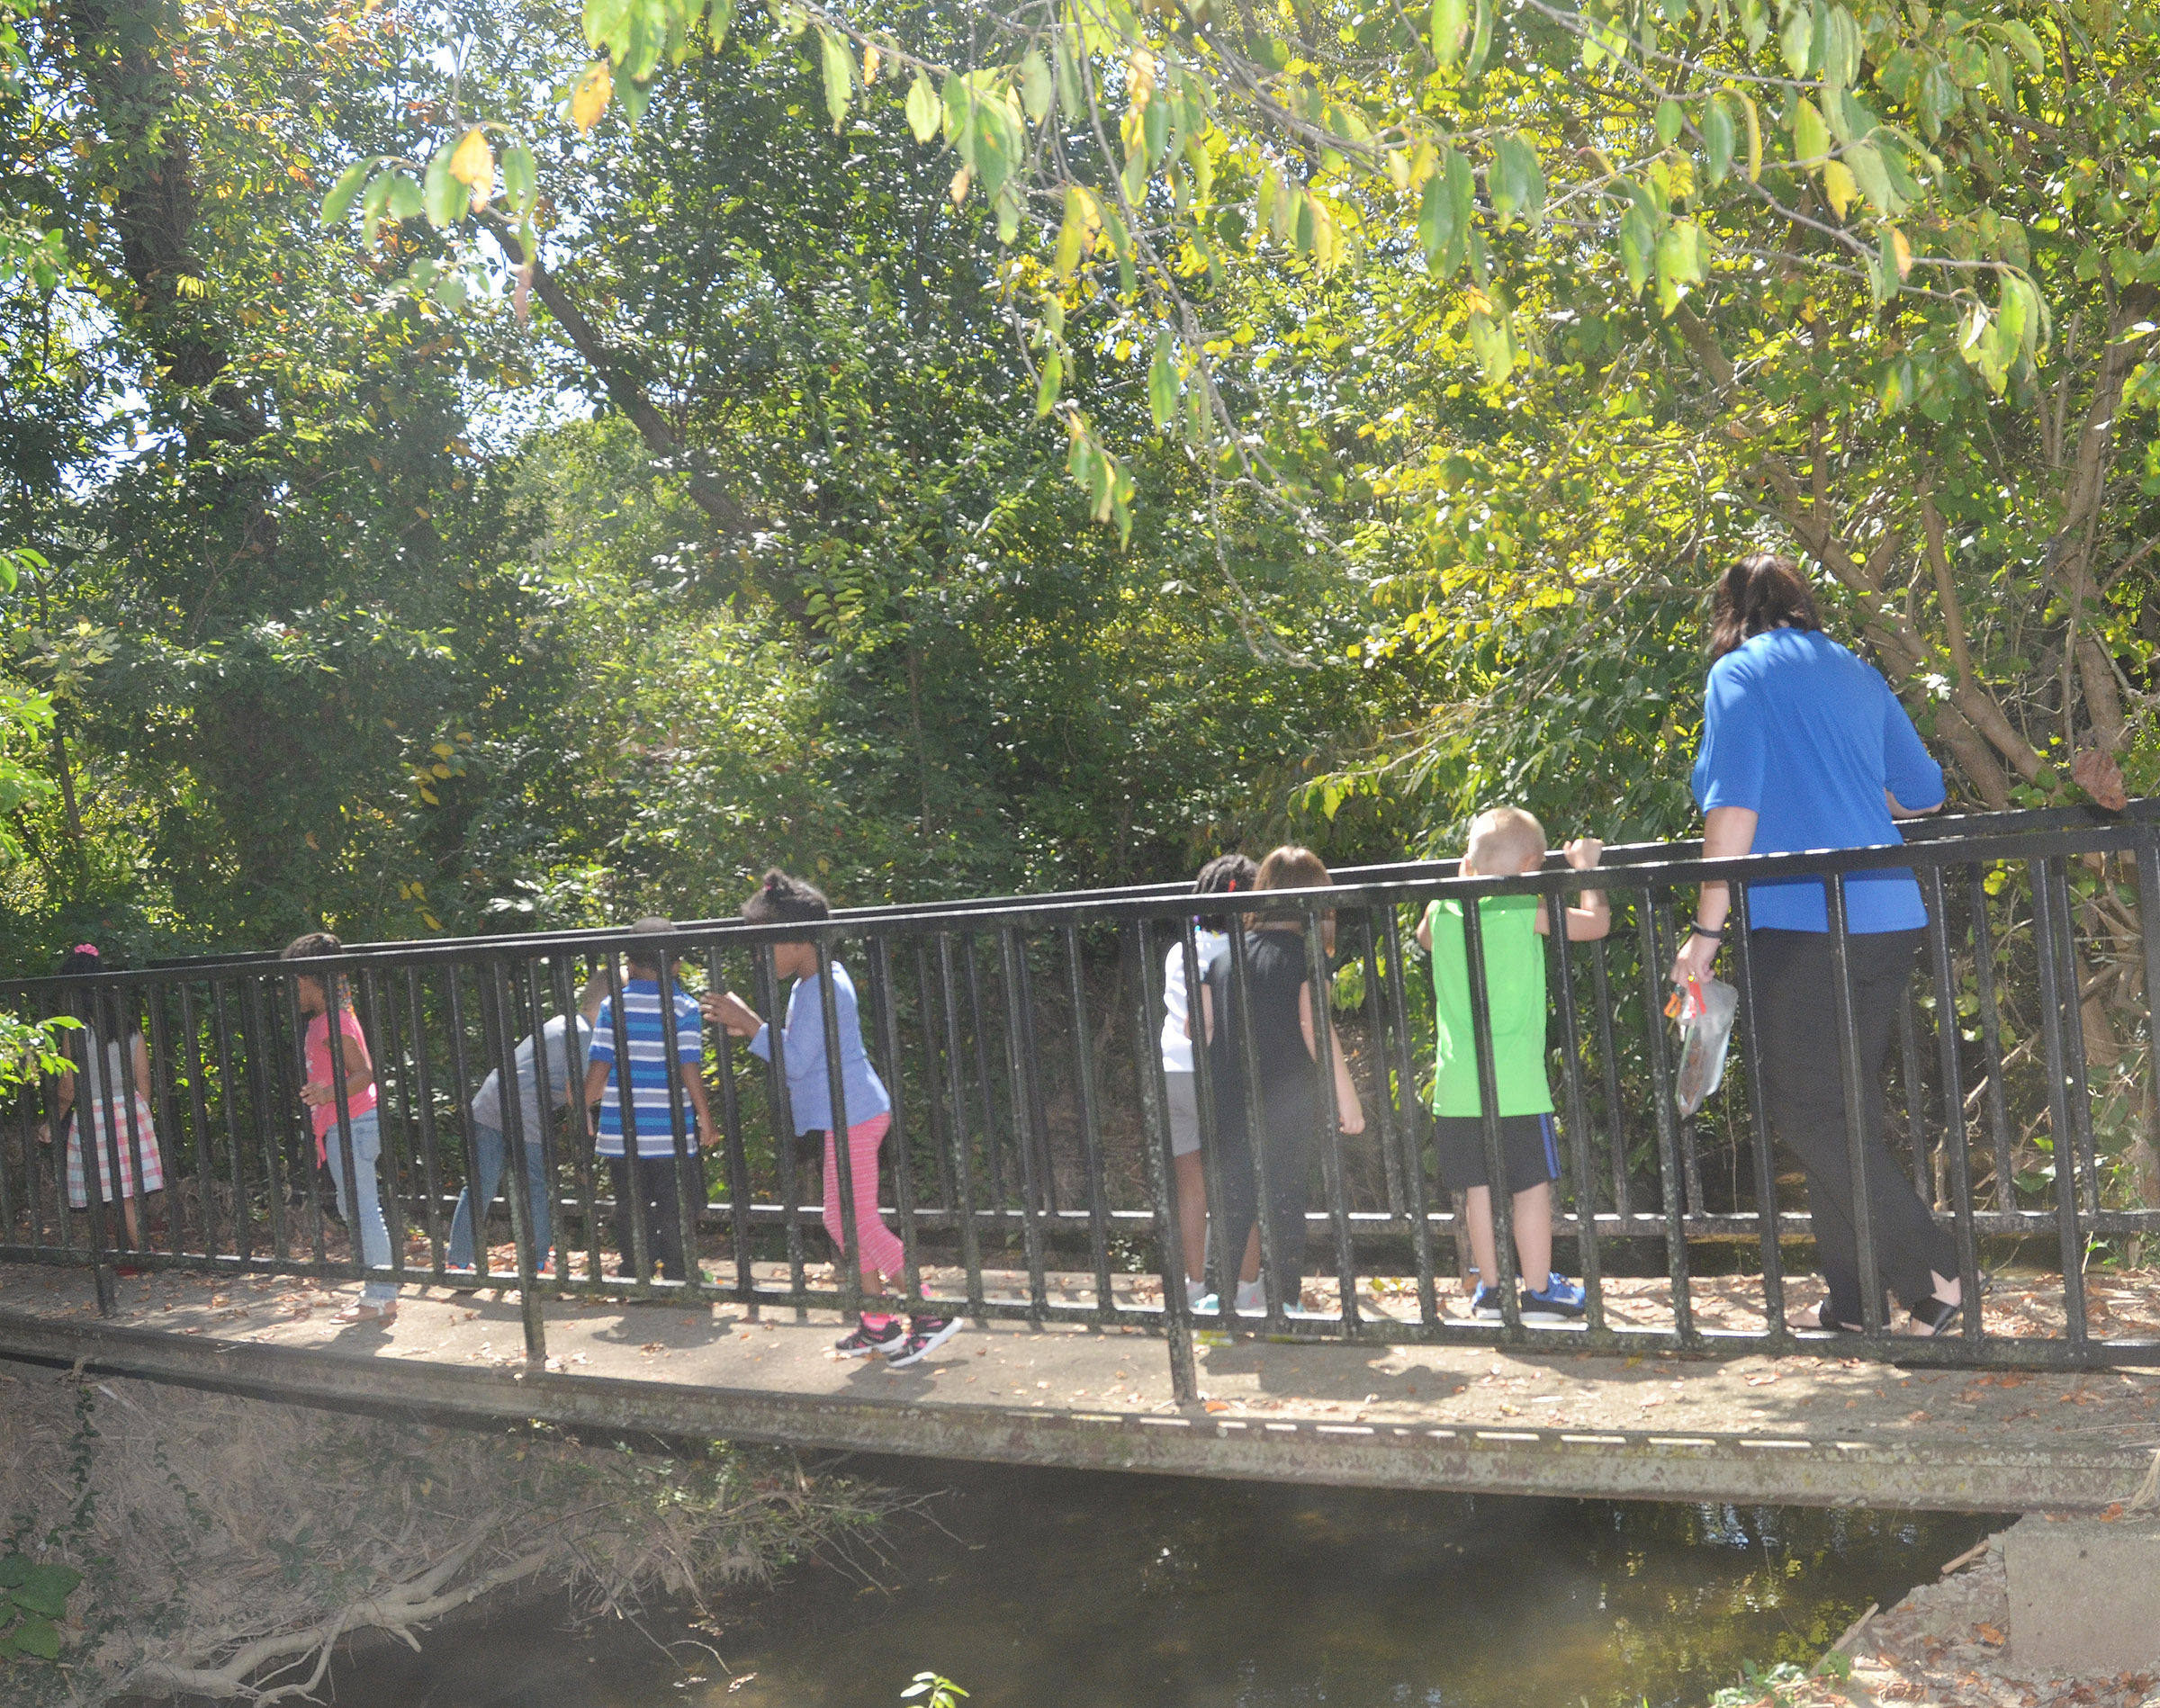 CES preschool teacher Denise Spencer walks with her students across a bridge during a nature walk.